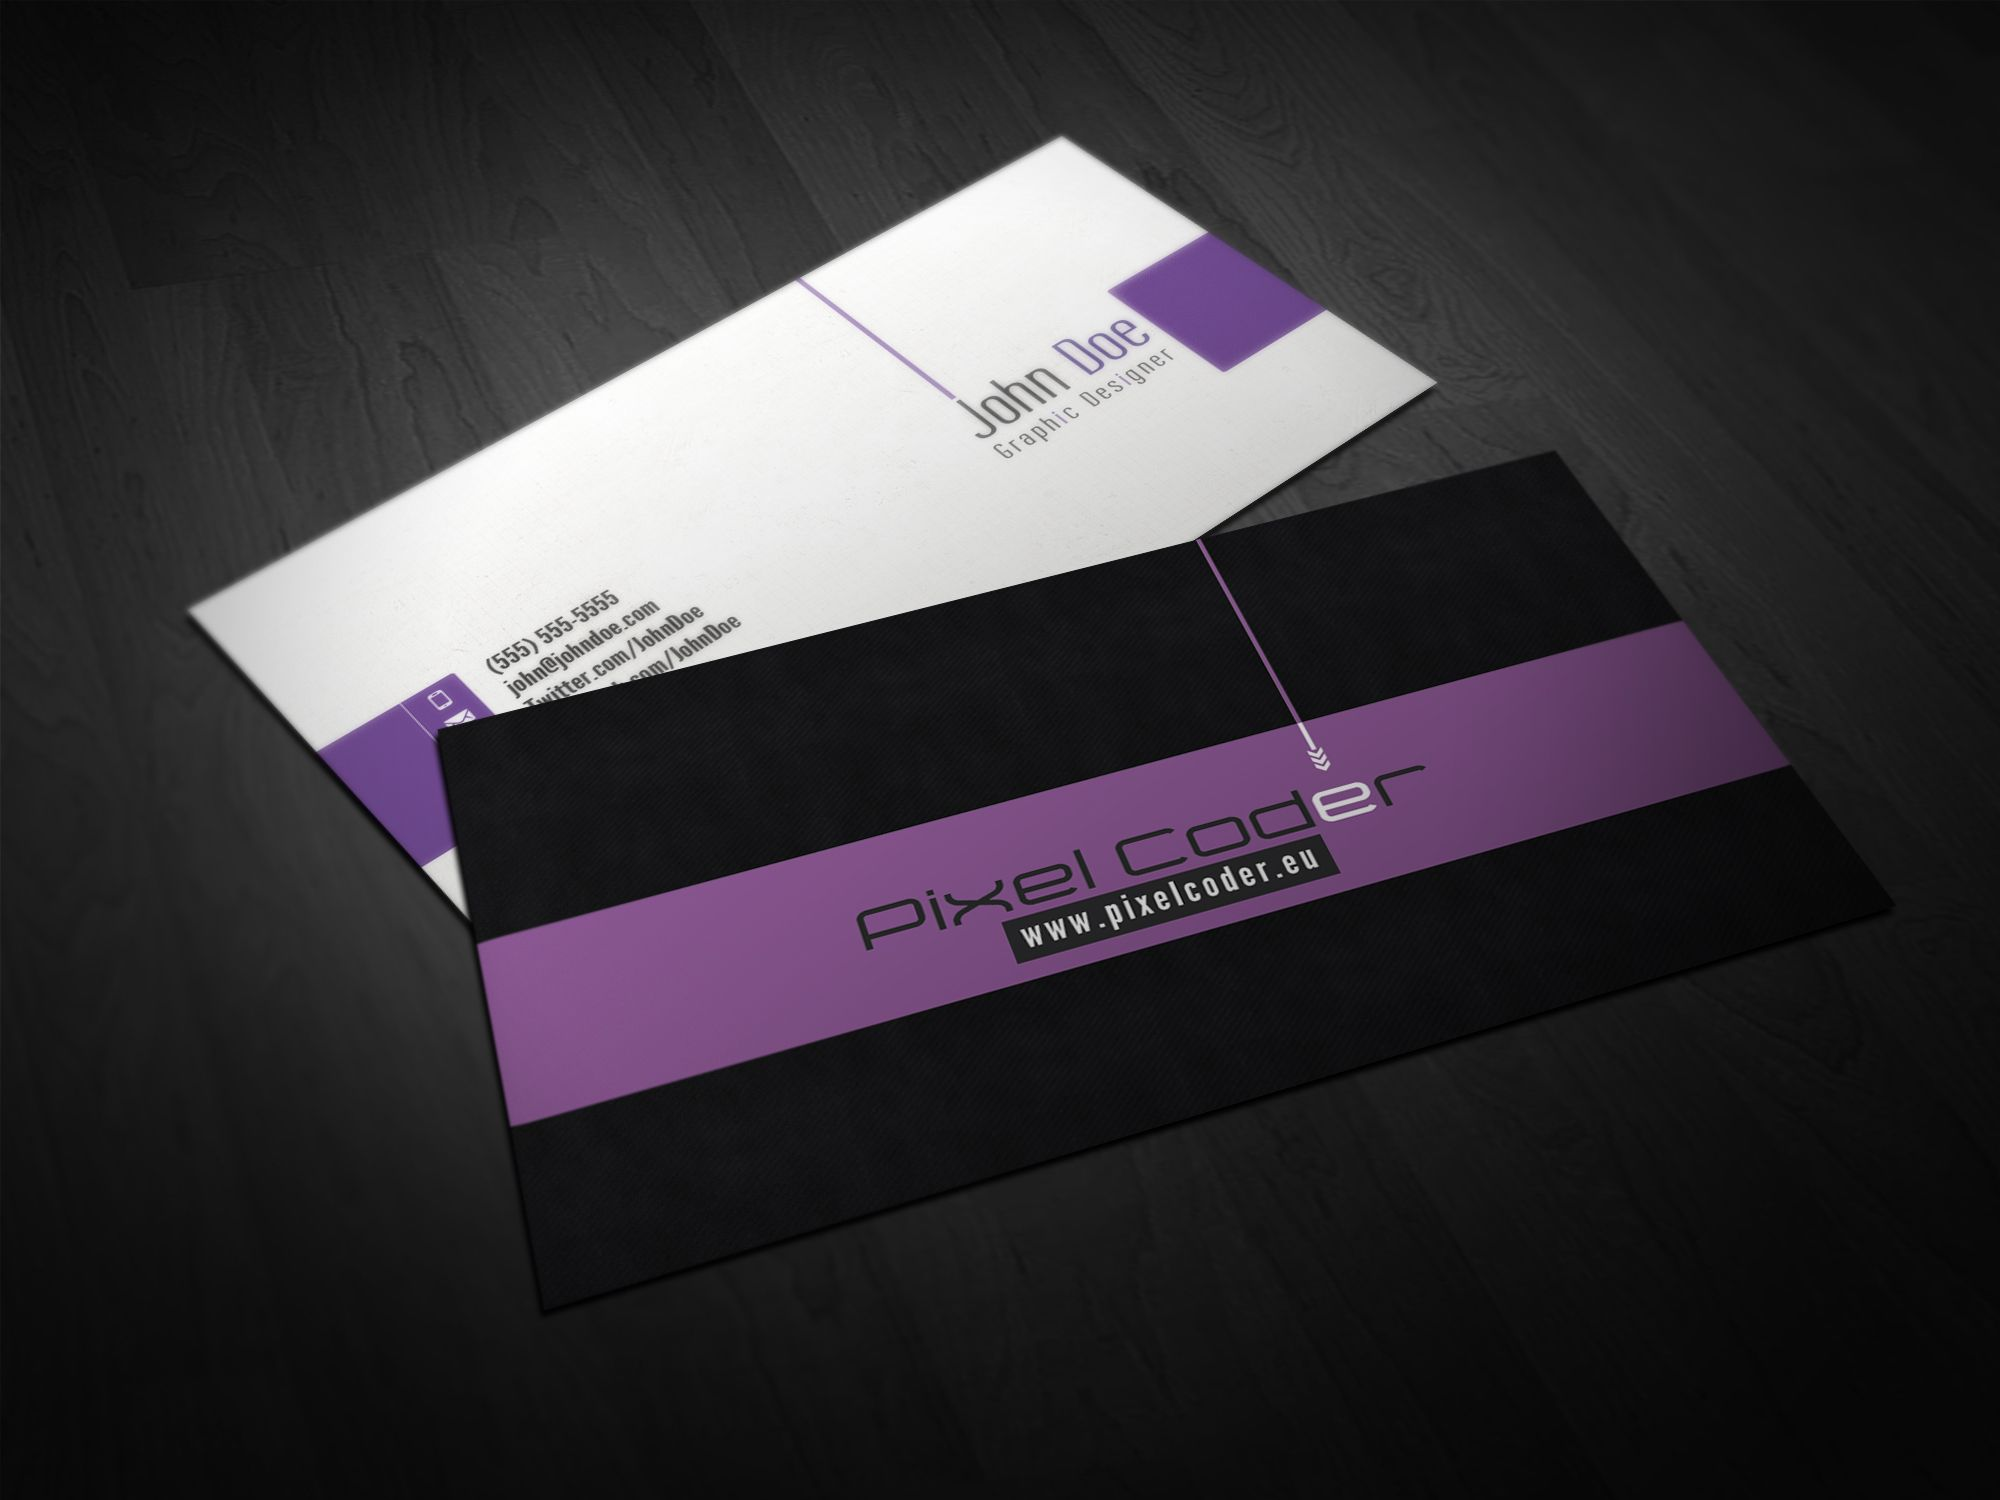 Photoshop Business Card TemplateBest Business Templates Best - Best business card templates free